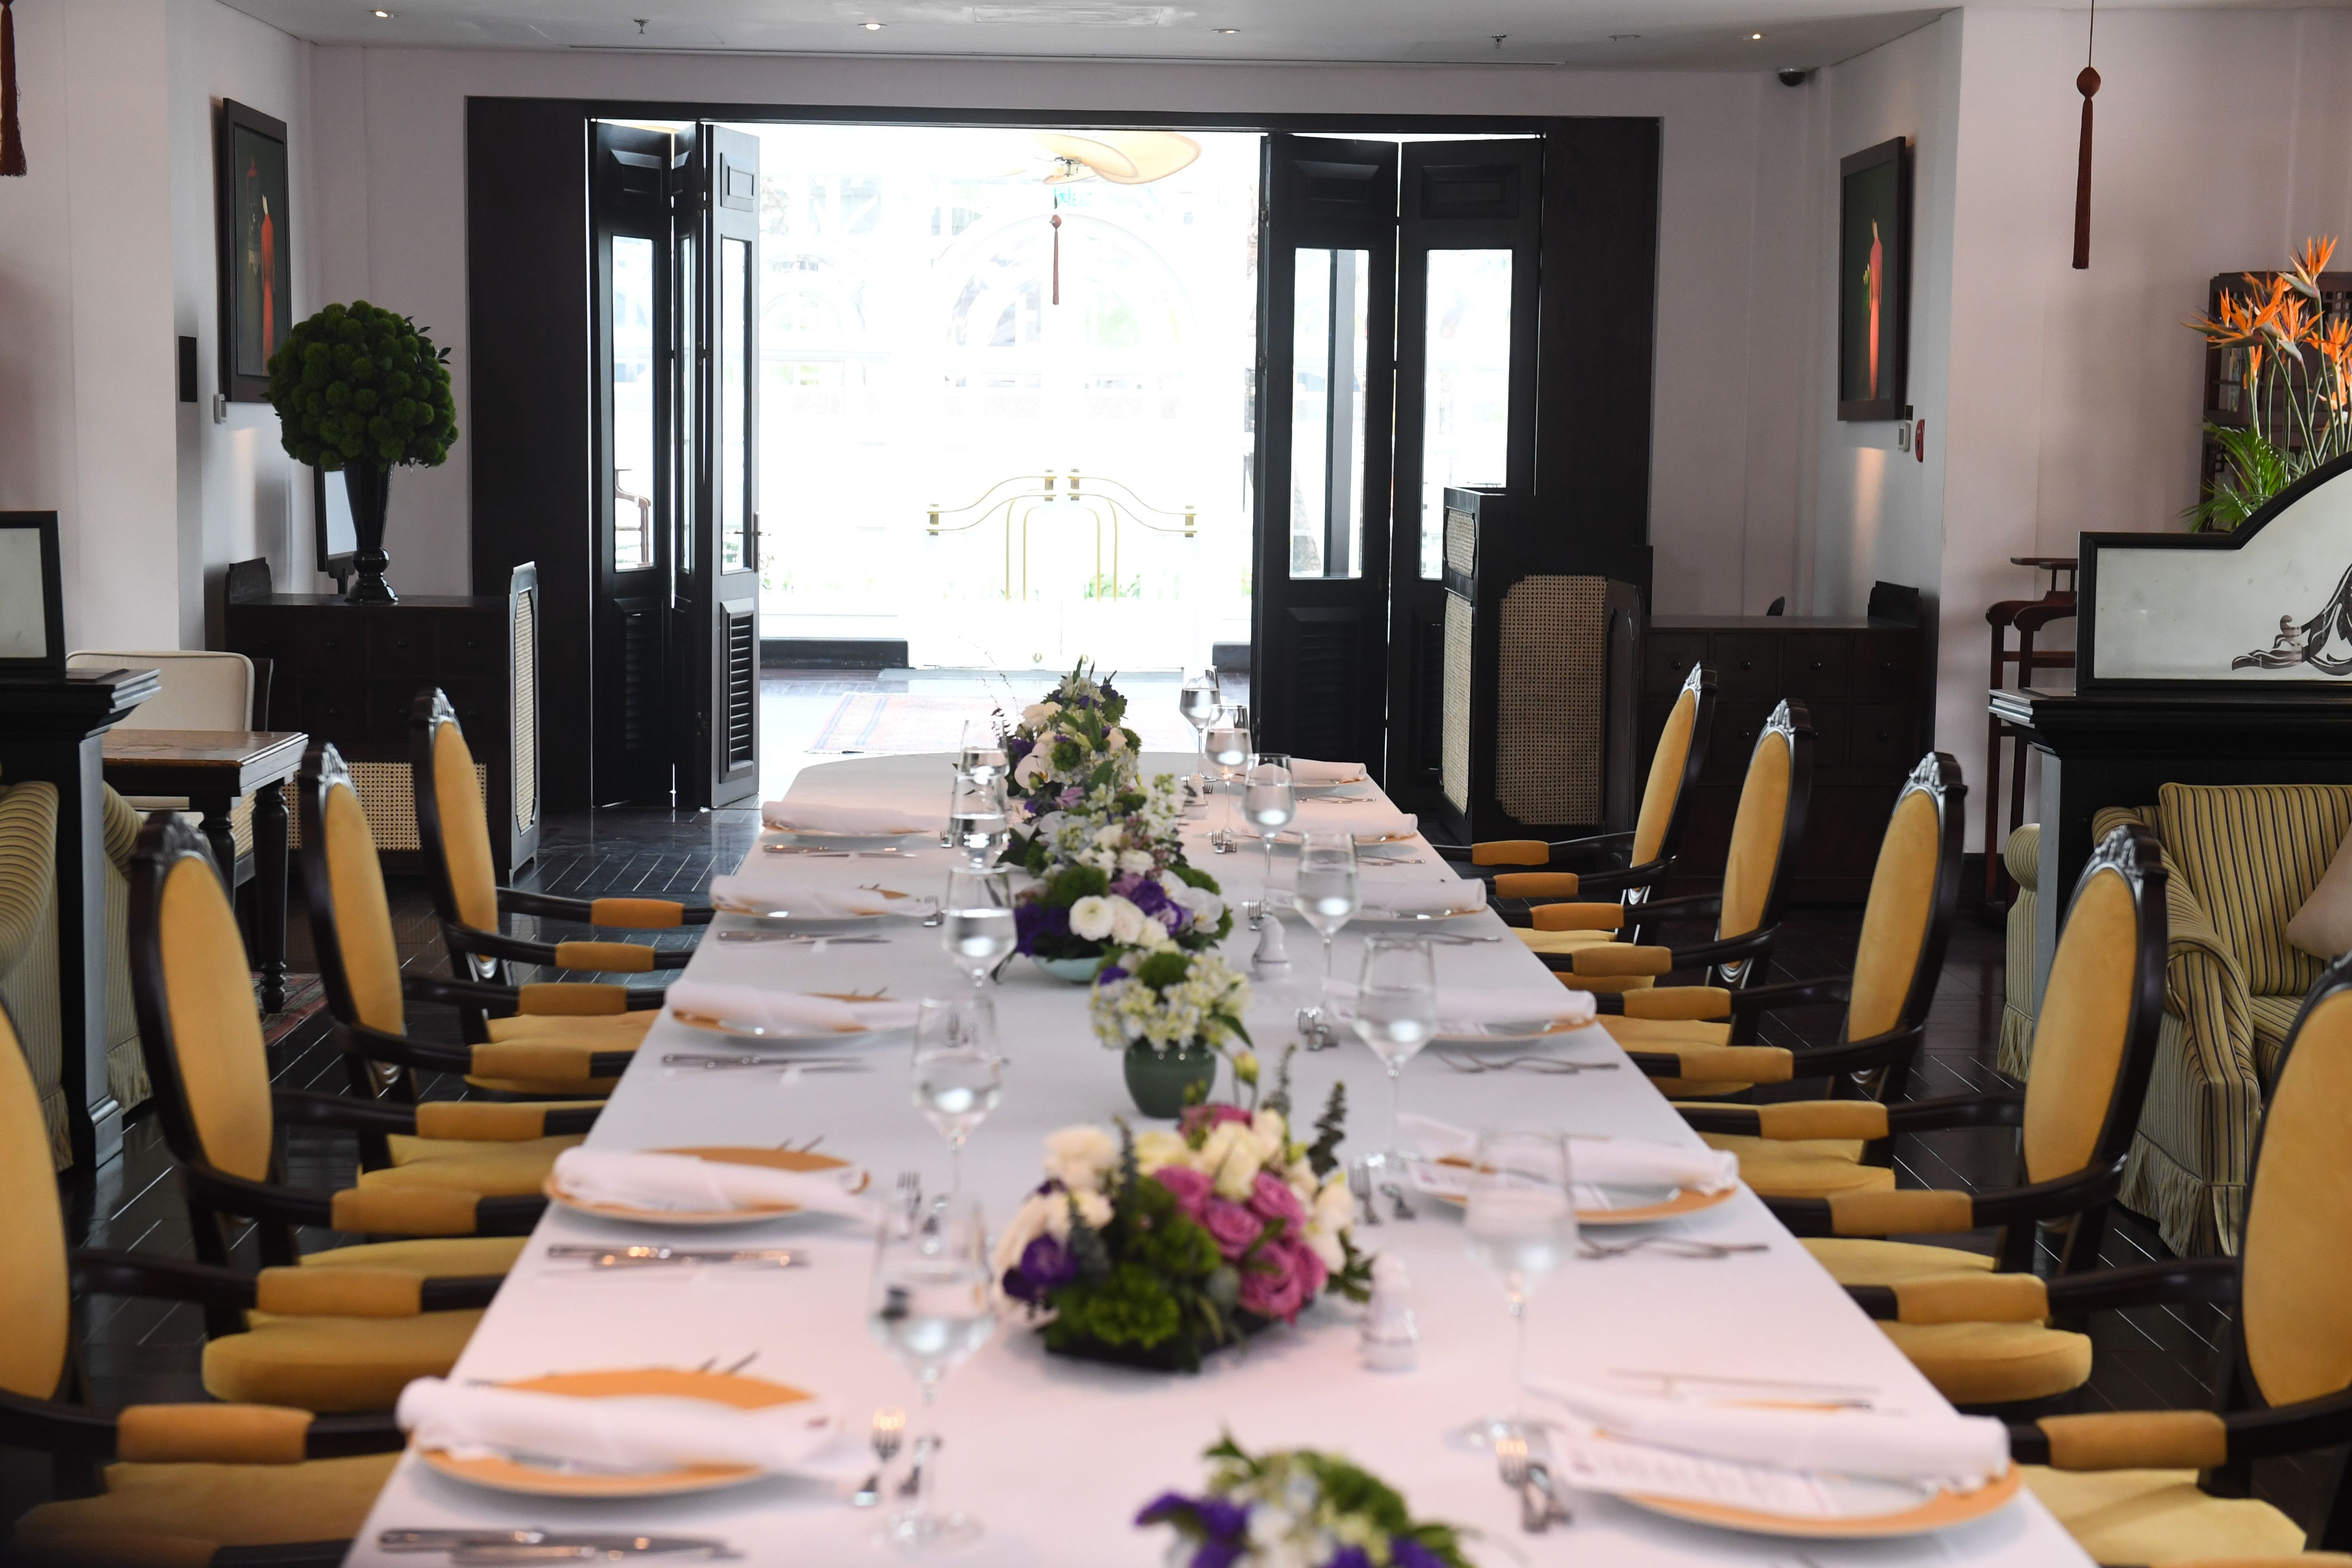 A table is all laid out for a cancelled working lunch between President Donald Trump and North Korea's leader Kim Jong Un during the summit in Hanoi on Feb. 28, 2019.